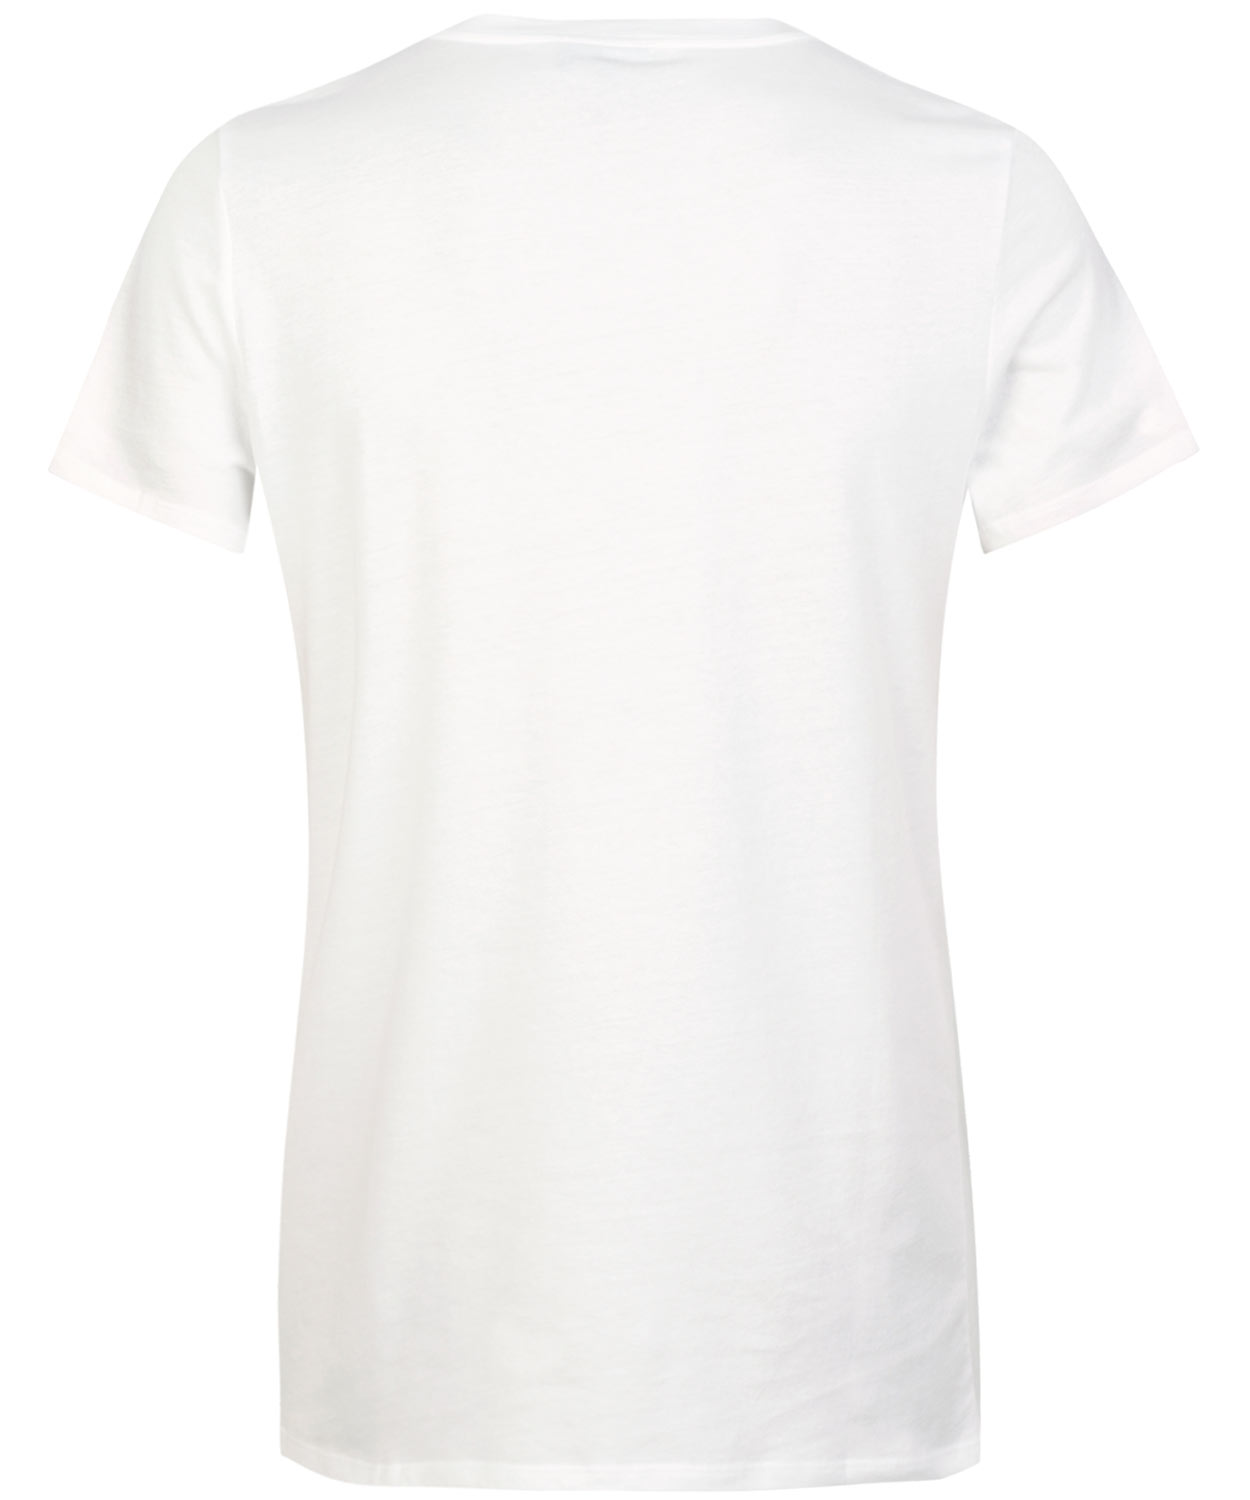 Lyst a p c logo tee in white for men for Apc white t shirt